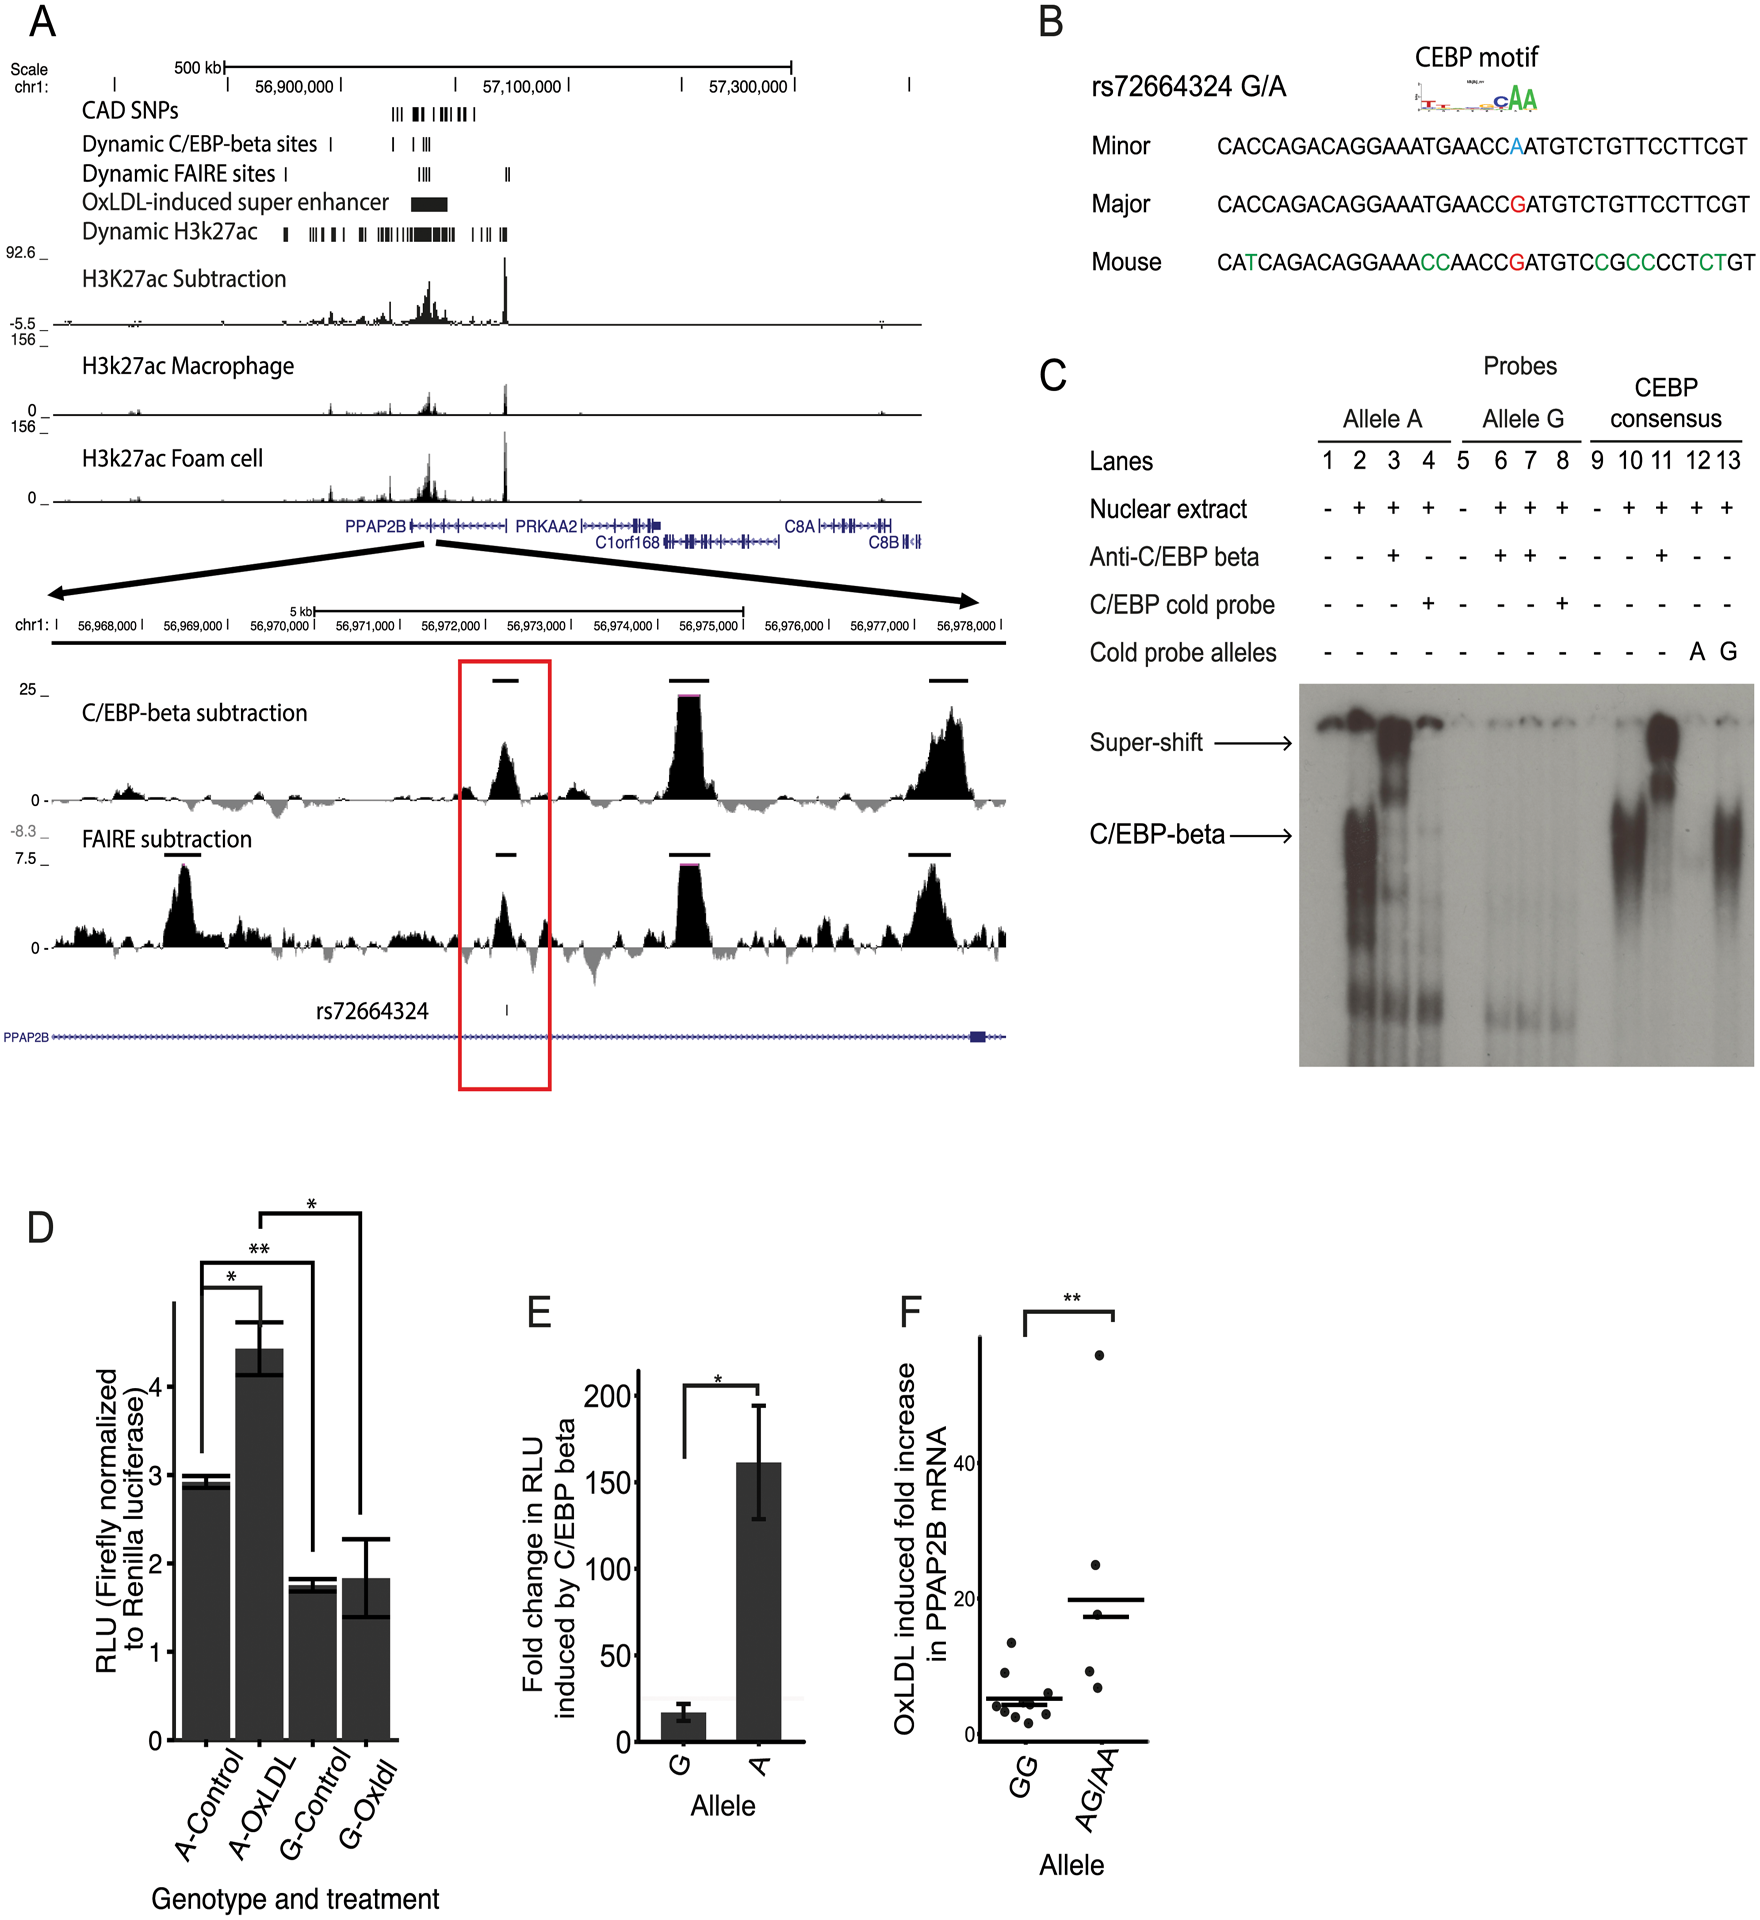 An intronic SNP at the <i>PPAP2B</i> locus regulates enhancer activity and oxLDL-induced expression of <i>PPAP2B</i>.